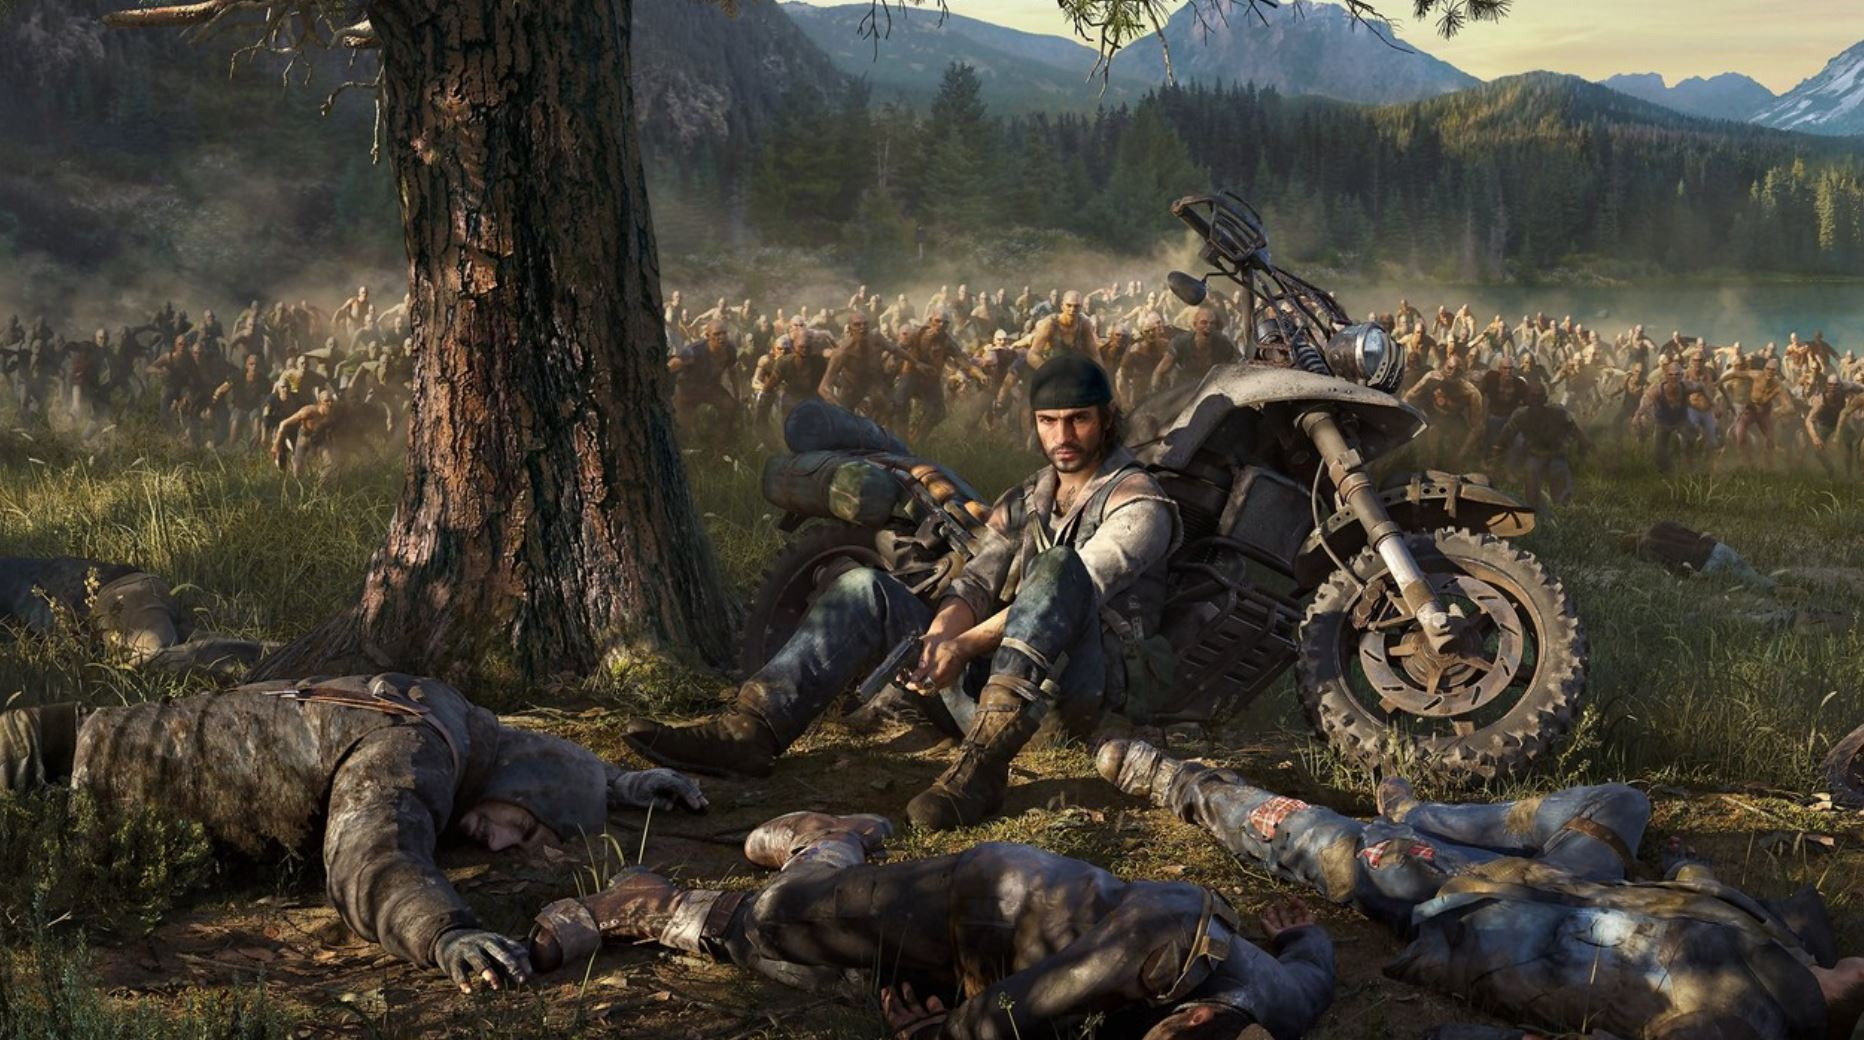 days-gone-update-1-70-patch-notes-prep-the-game-for-ps5-backwards-compatibility